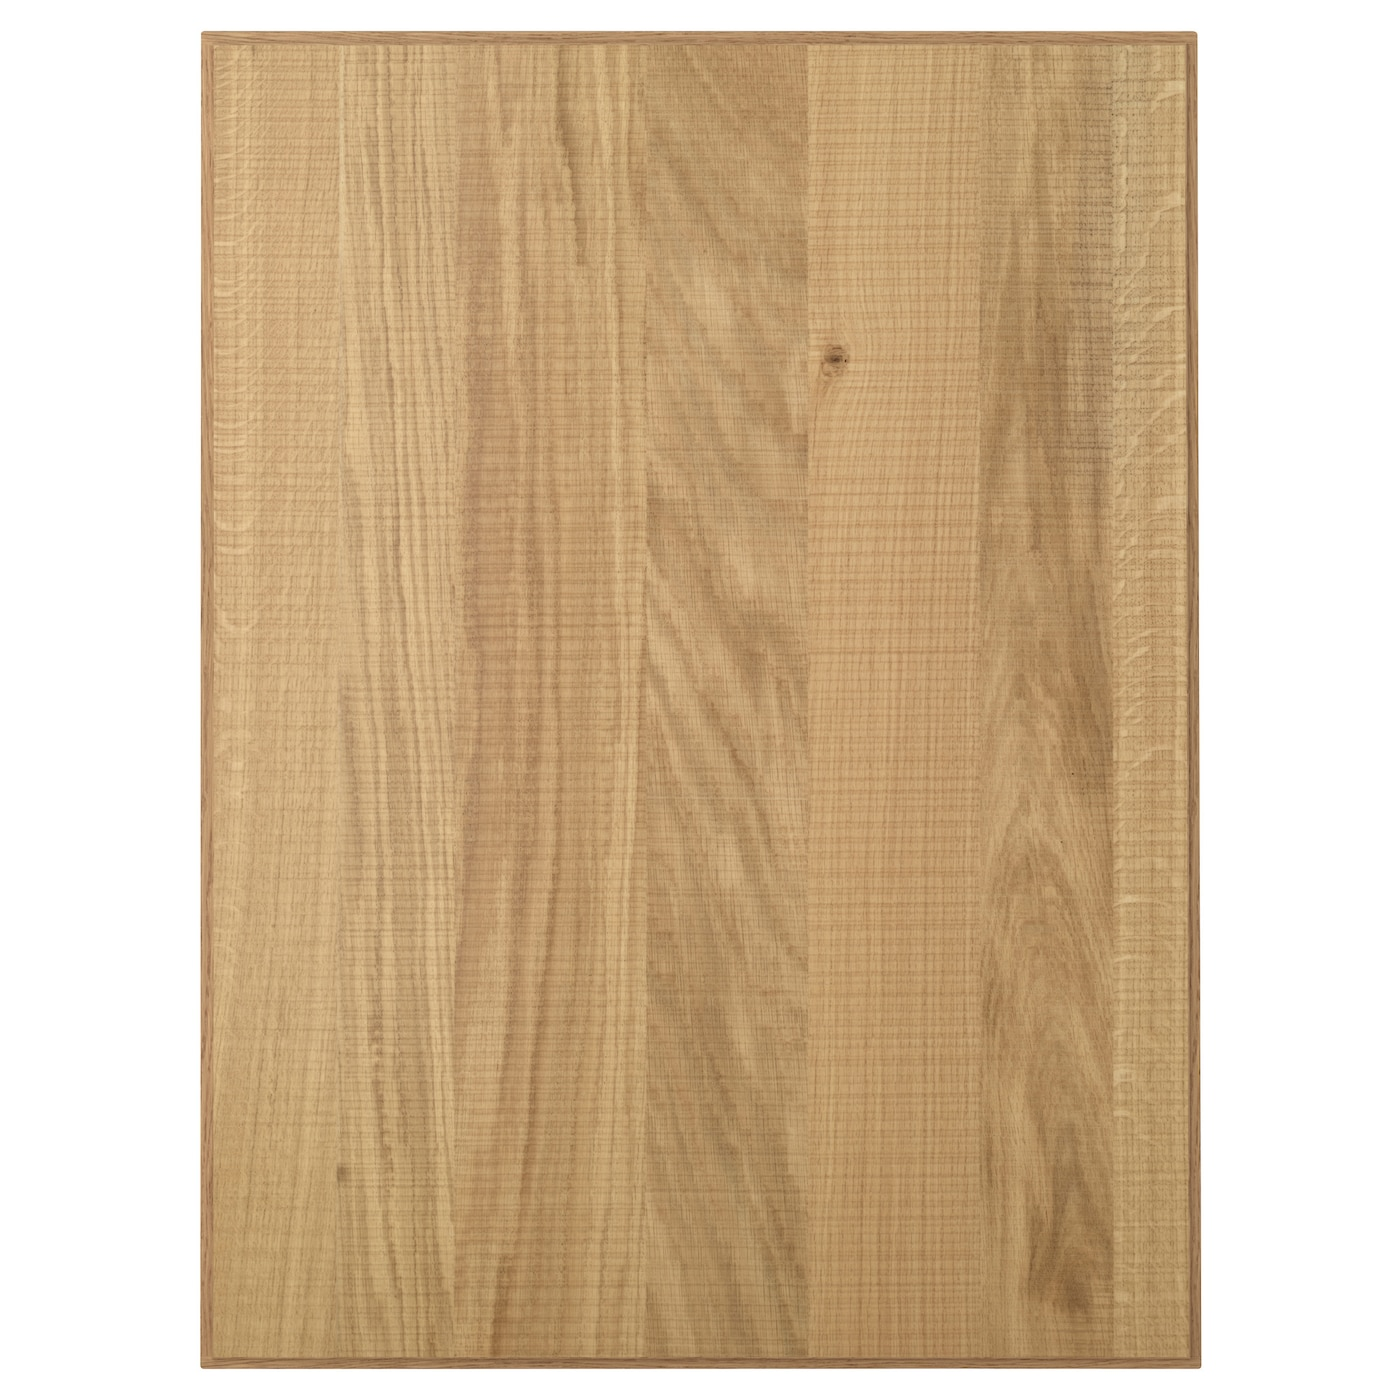 Hyttan door oak veneer 60x80 cm ikea for Meuble 60x40